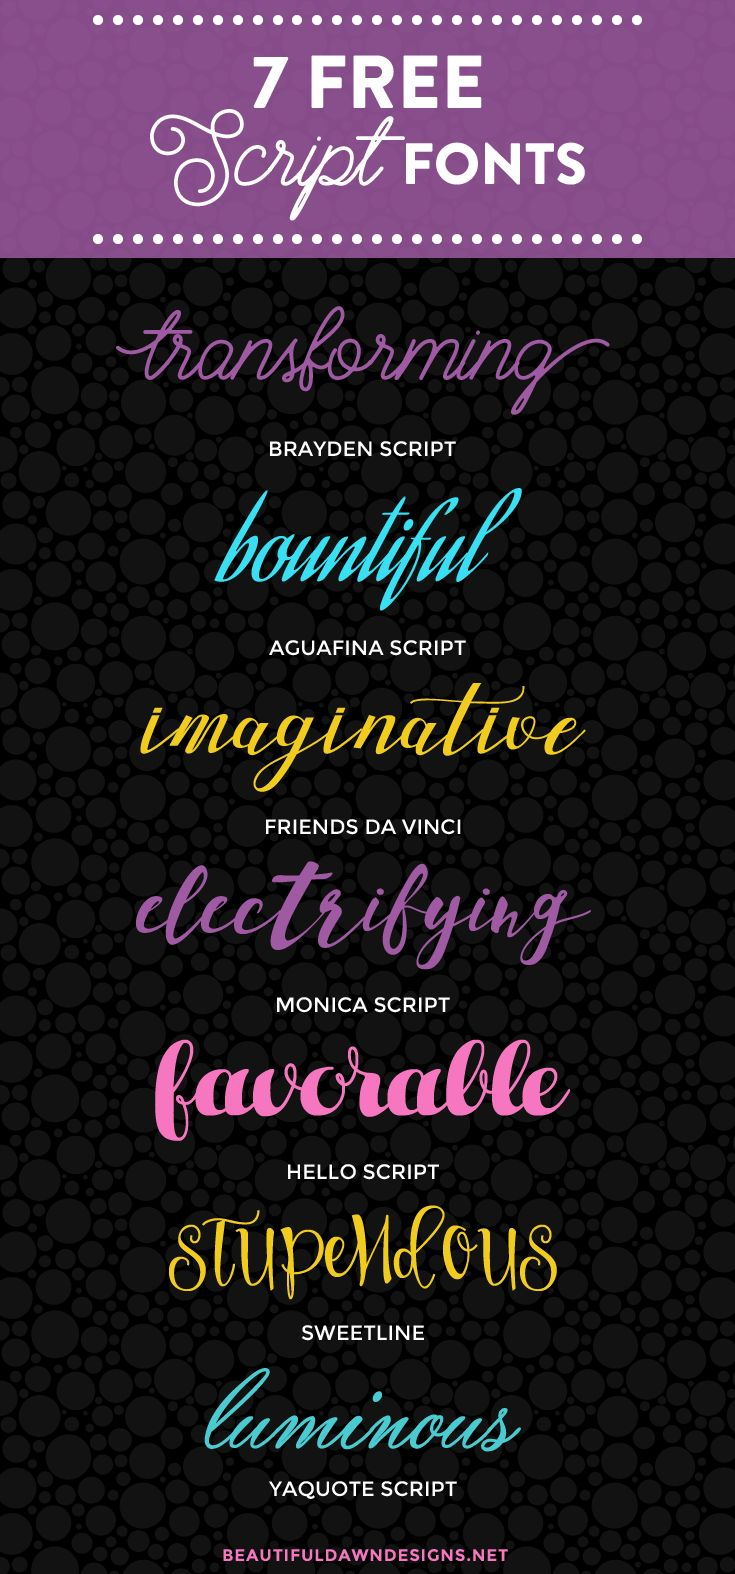 Today I'm bringing you a roundup of 7 free script fonts that are a part of my font collection. Free fonts have really come a long way. While…